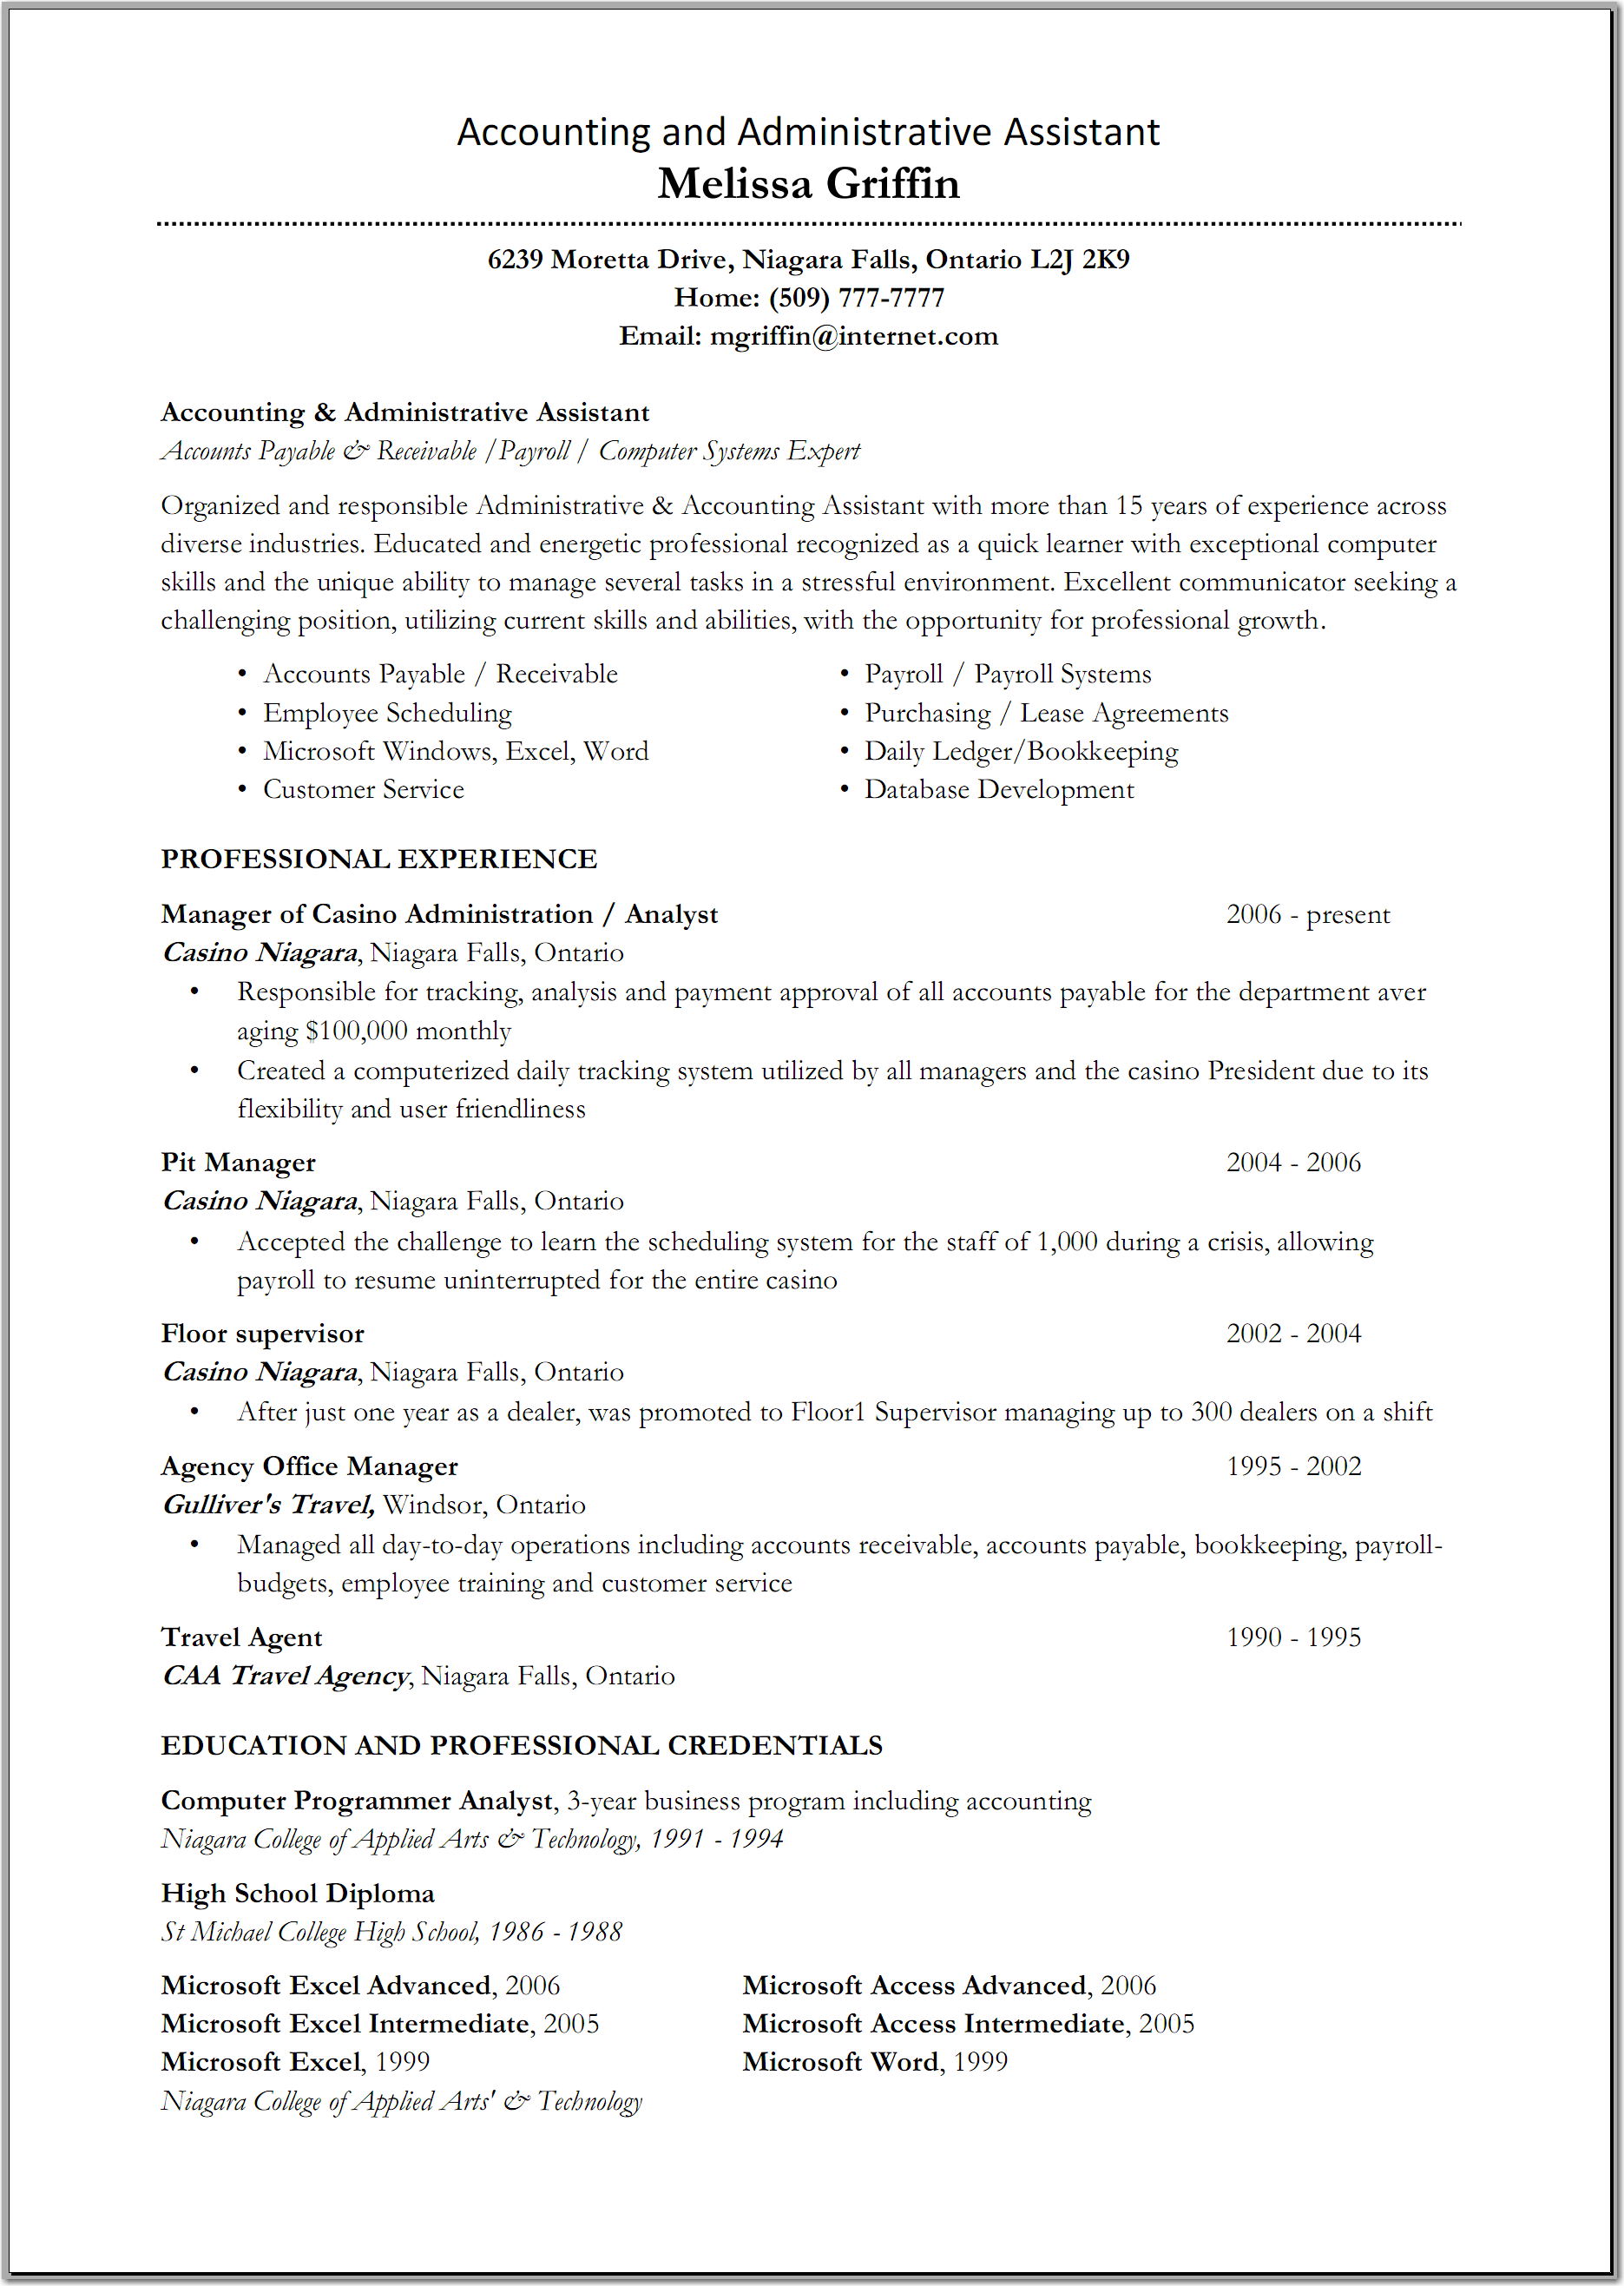 Accounting Assistant Resume Sample Whether Or Not Accounting Assistant  Resume Can Be Successful Depending On How You Will Make The Resume.